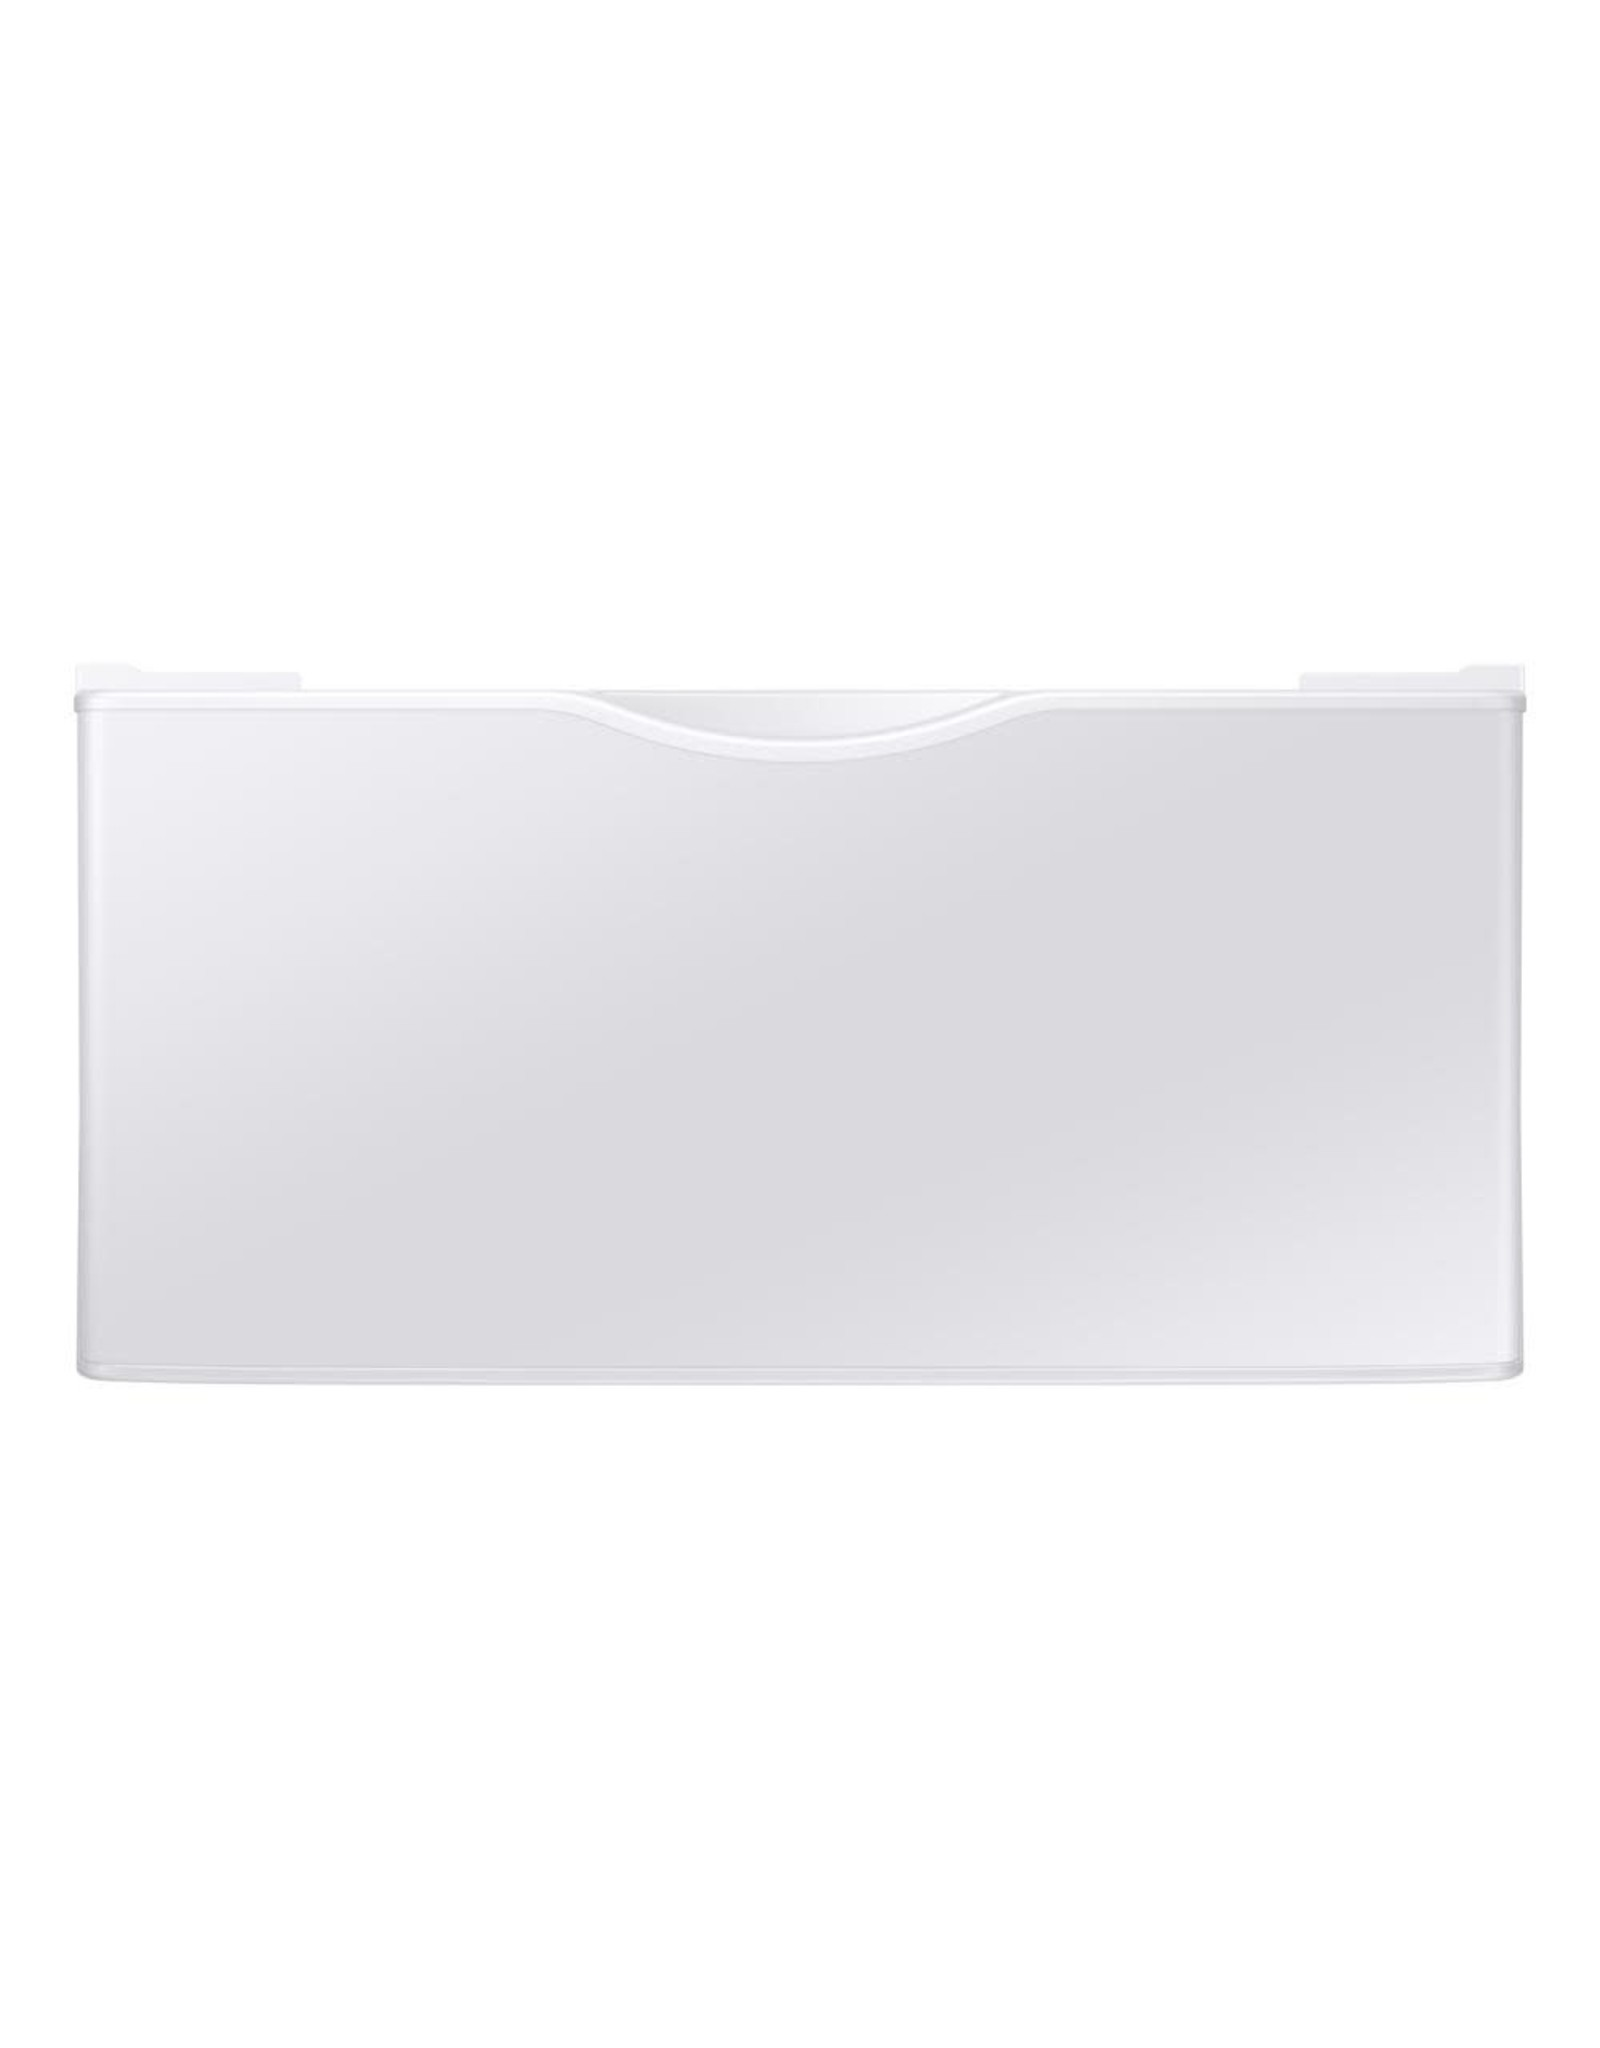 SAMSUNG WE402NW Samsung 14.2 in. White Laundry Pedestal with Storage Drawer